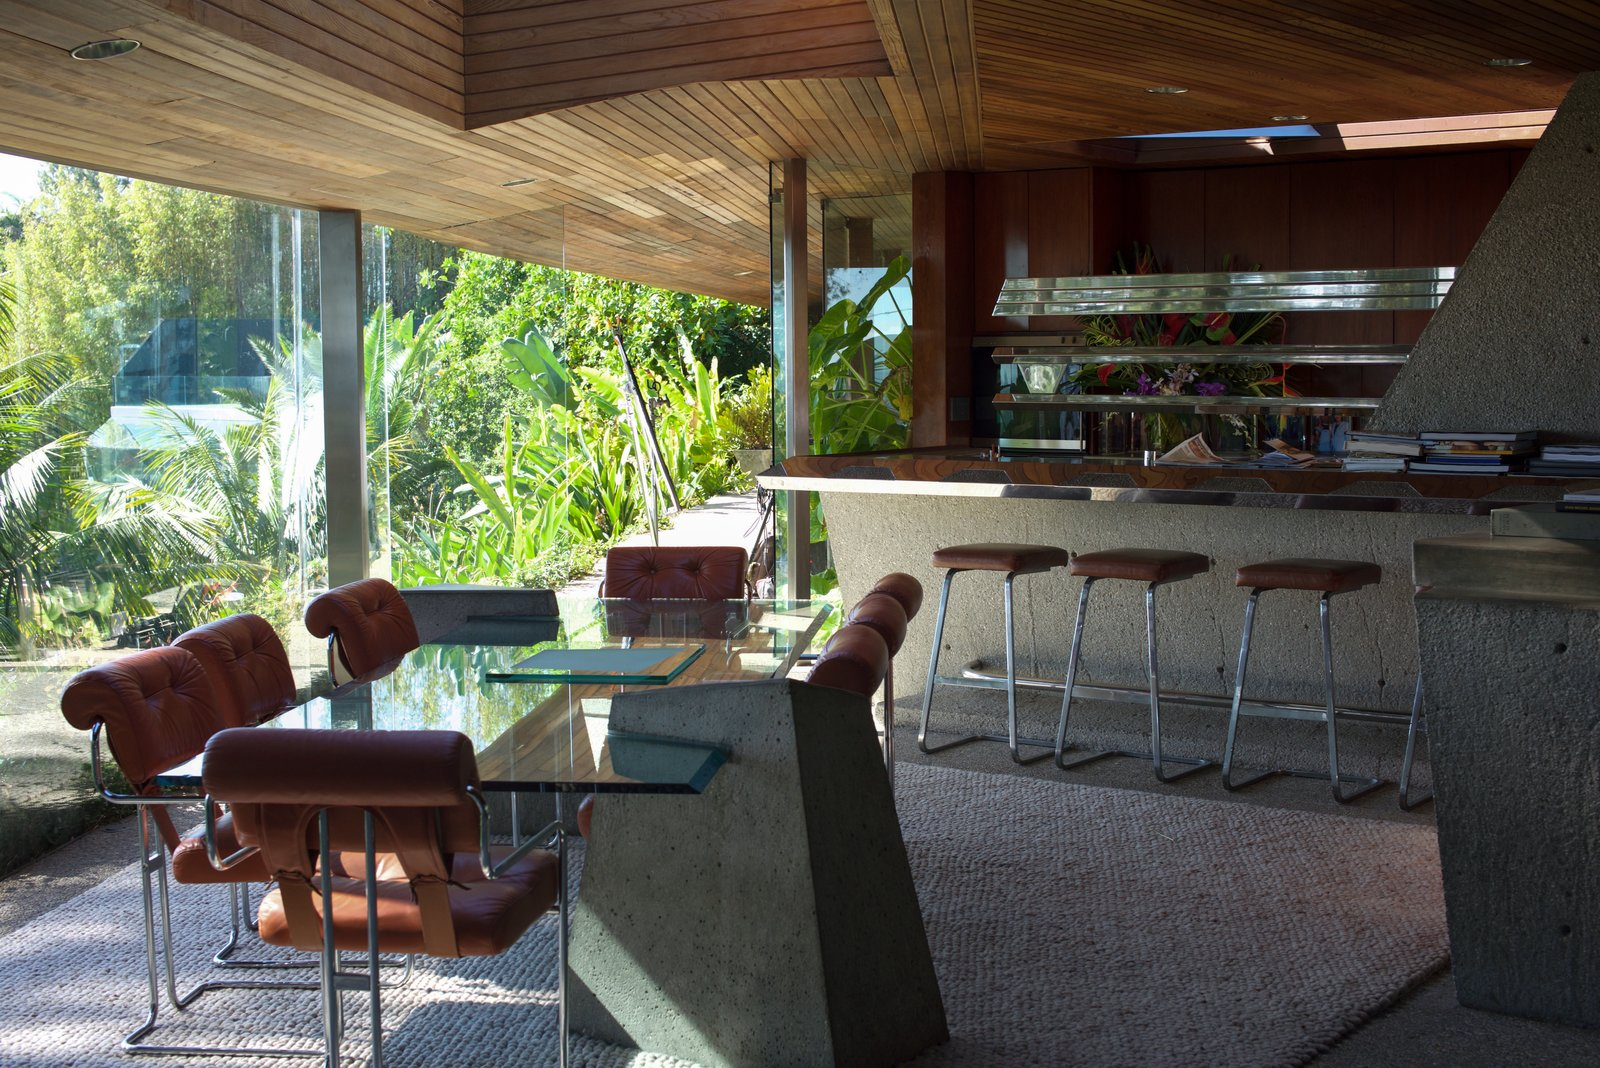 The glass table in the dining room was a Lautner-designed piece that he created for Goldstein.  Behind the Scenes at John Lautner's Sheats-Goldstein Residence by Paige Alexus